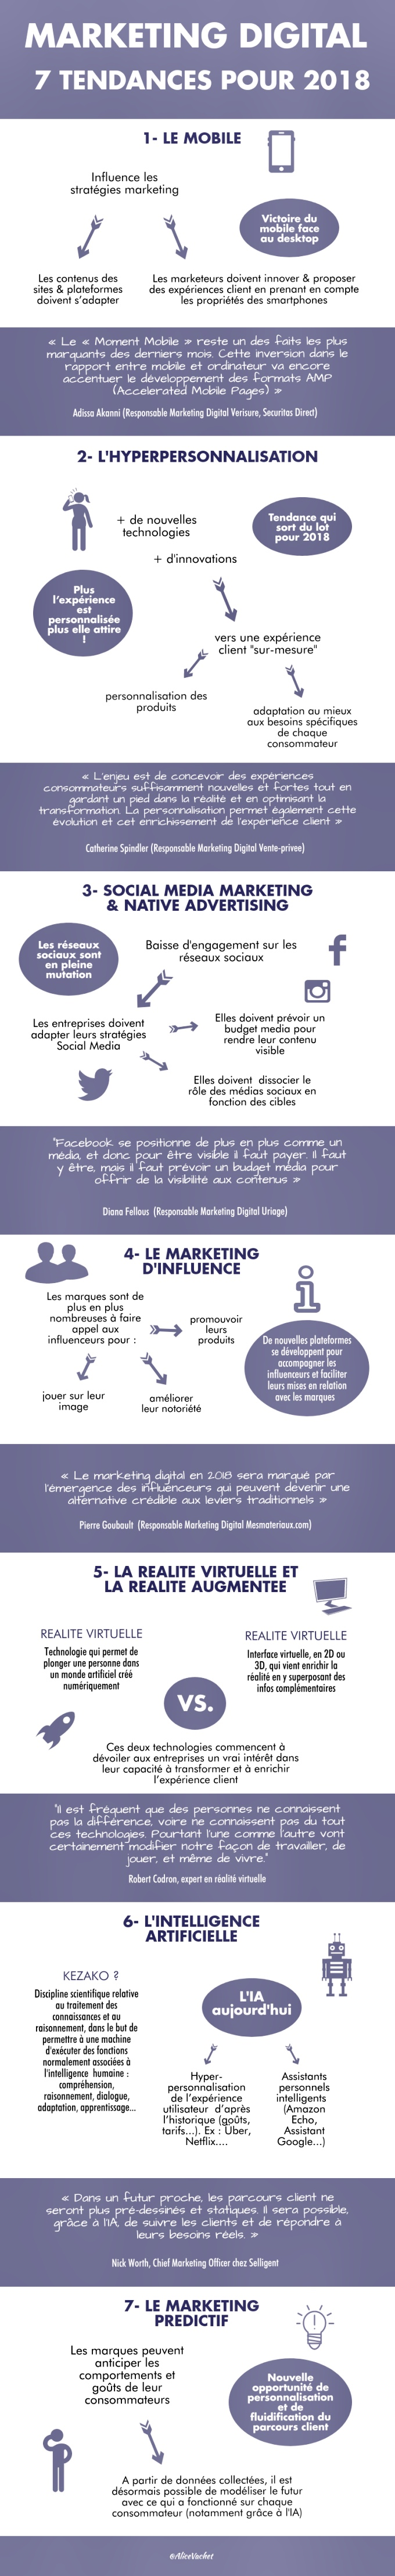 [Infographie] Marketing Digital : 7 Tendances pour 2018 📊